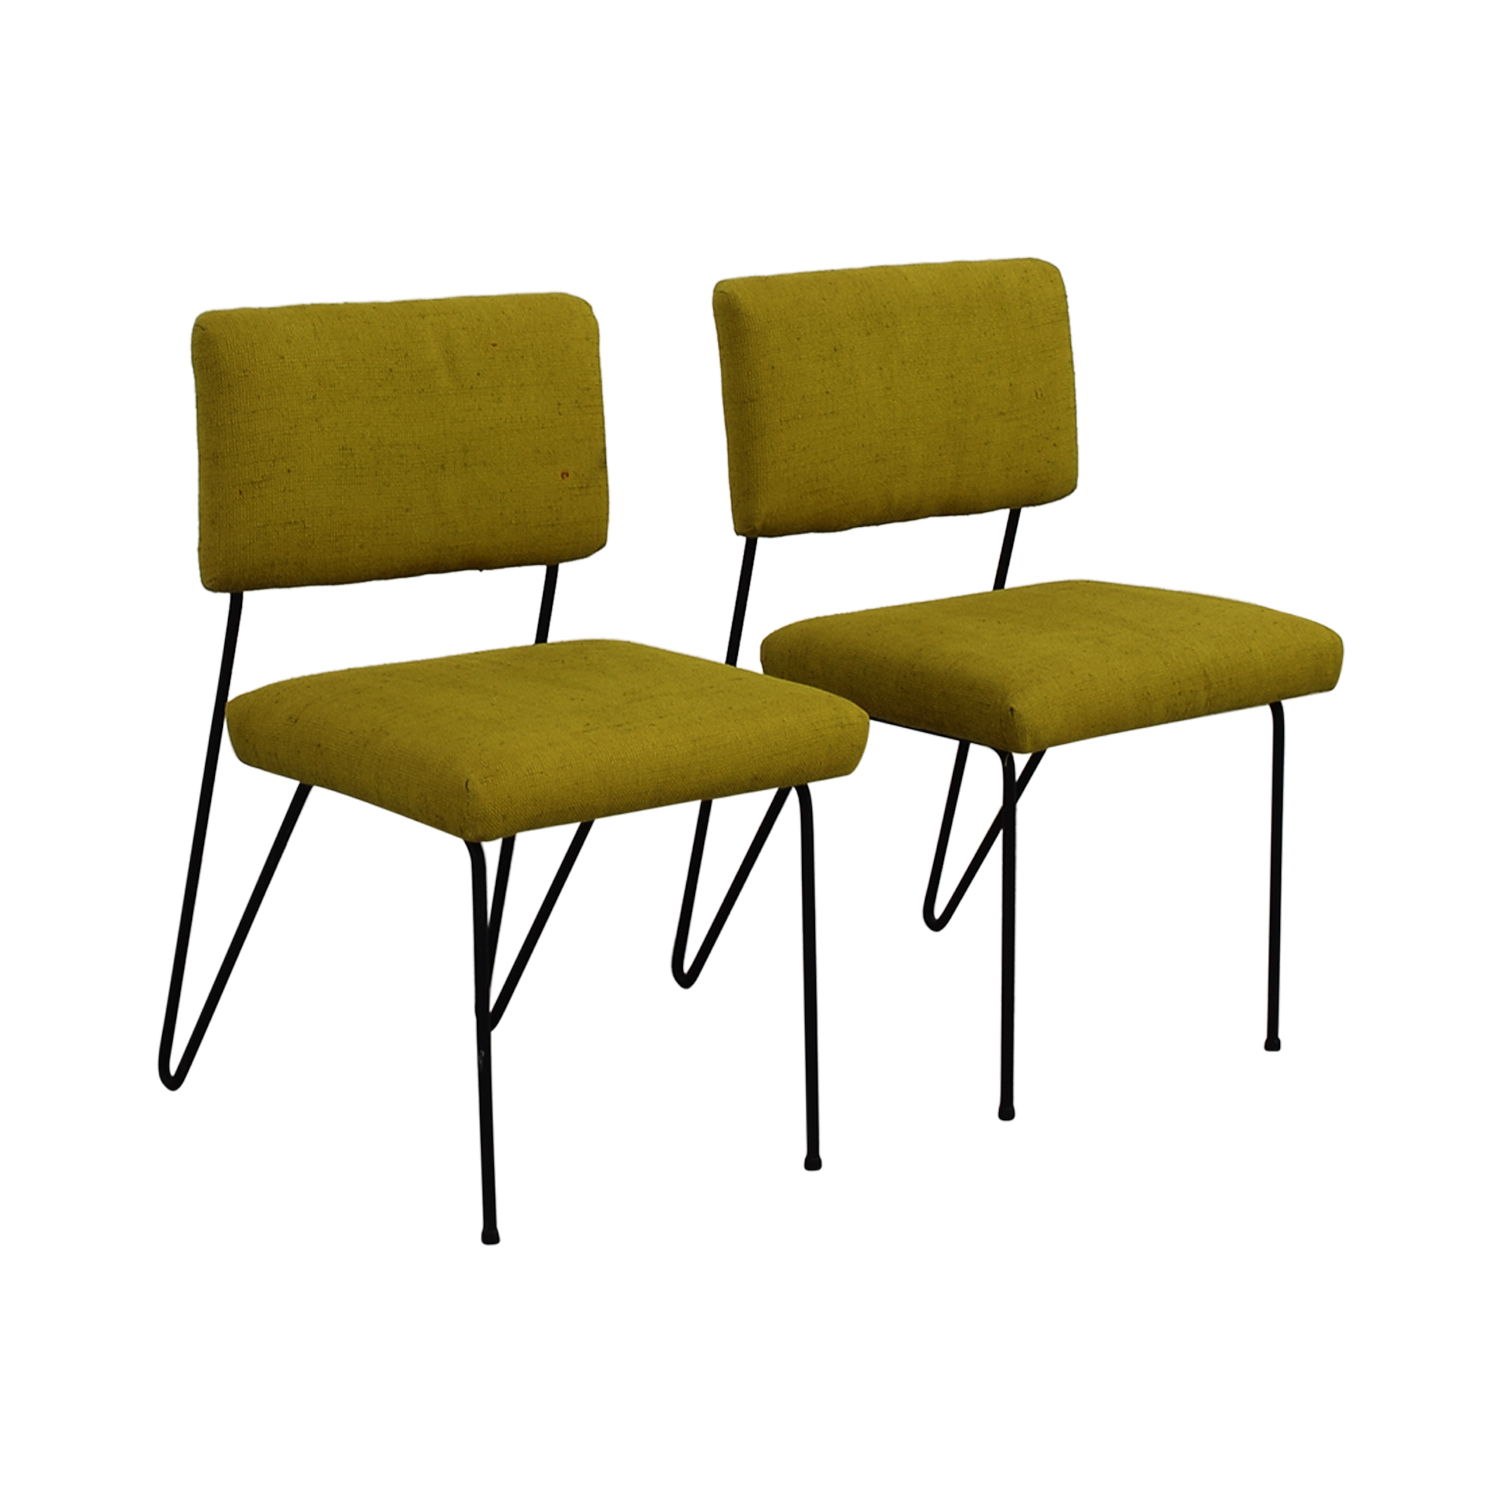 Furniture Masters Furniture Masters Green Fabric and Metal Chairs price